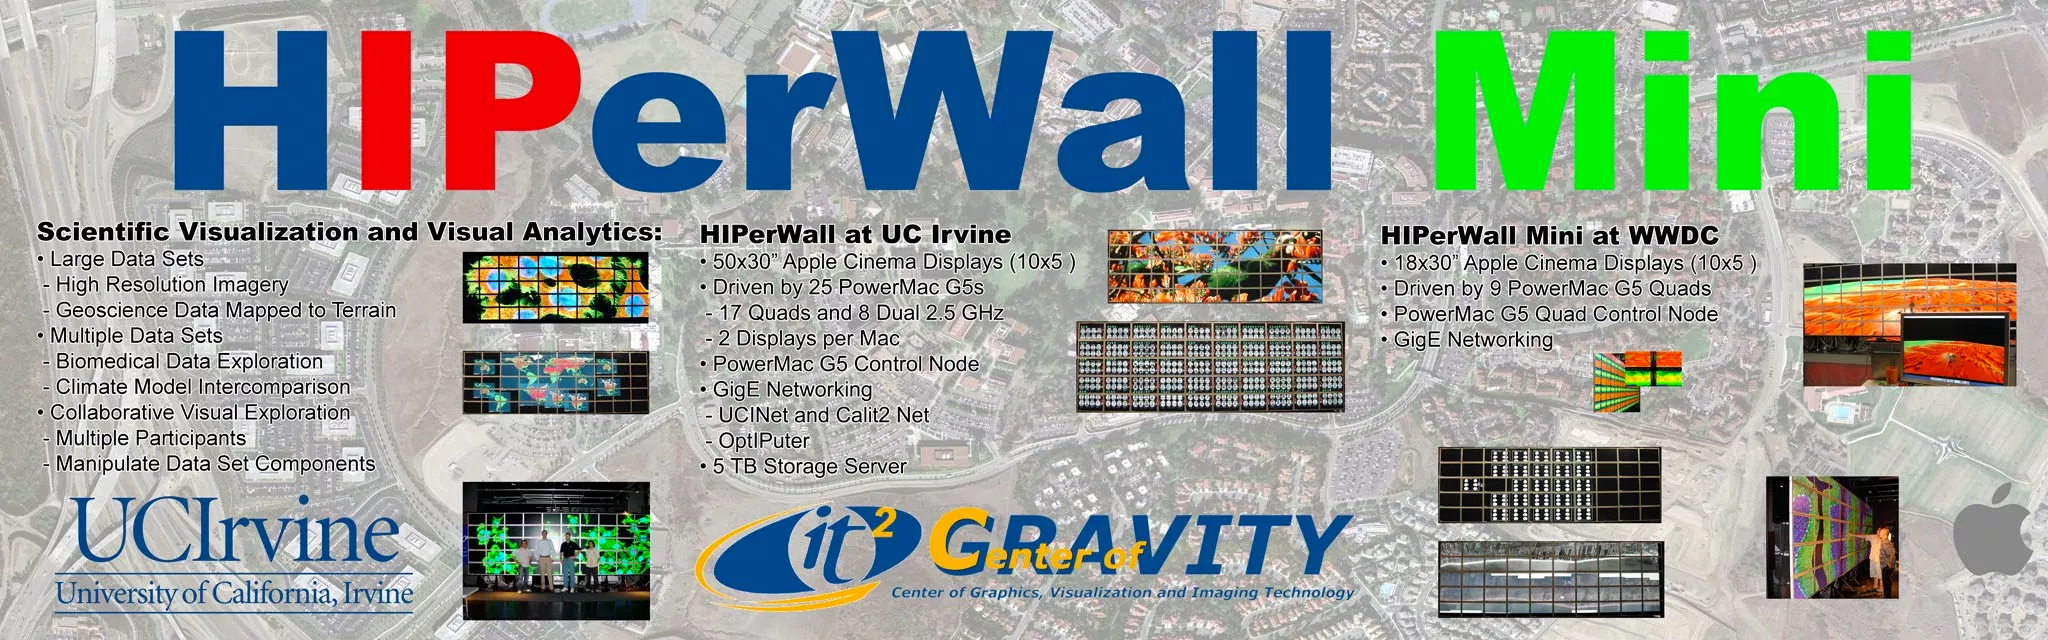 Hiperwall Old Name